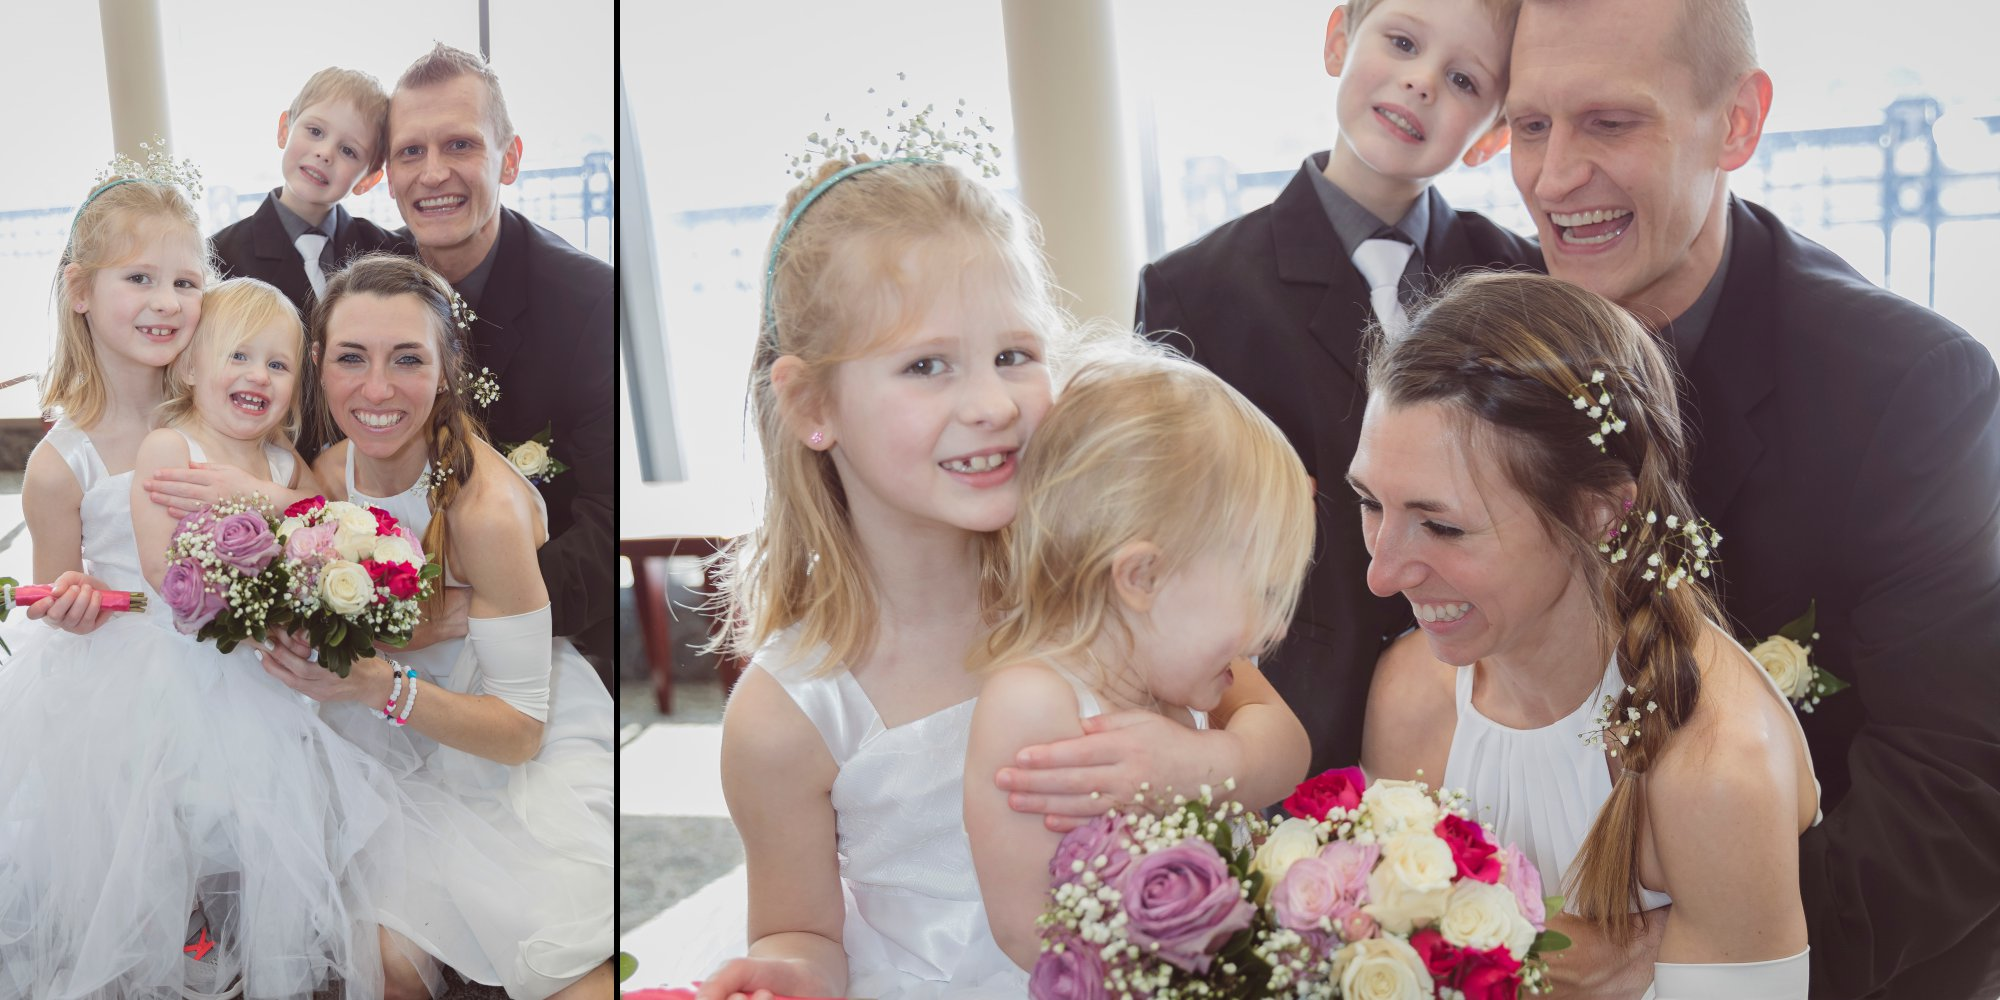 DuPage County Courthouse Wedding 2